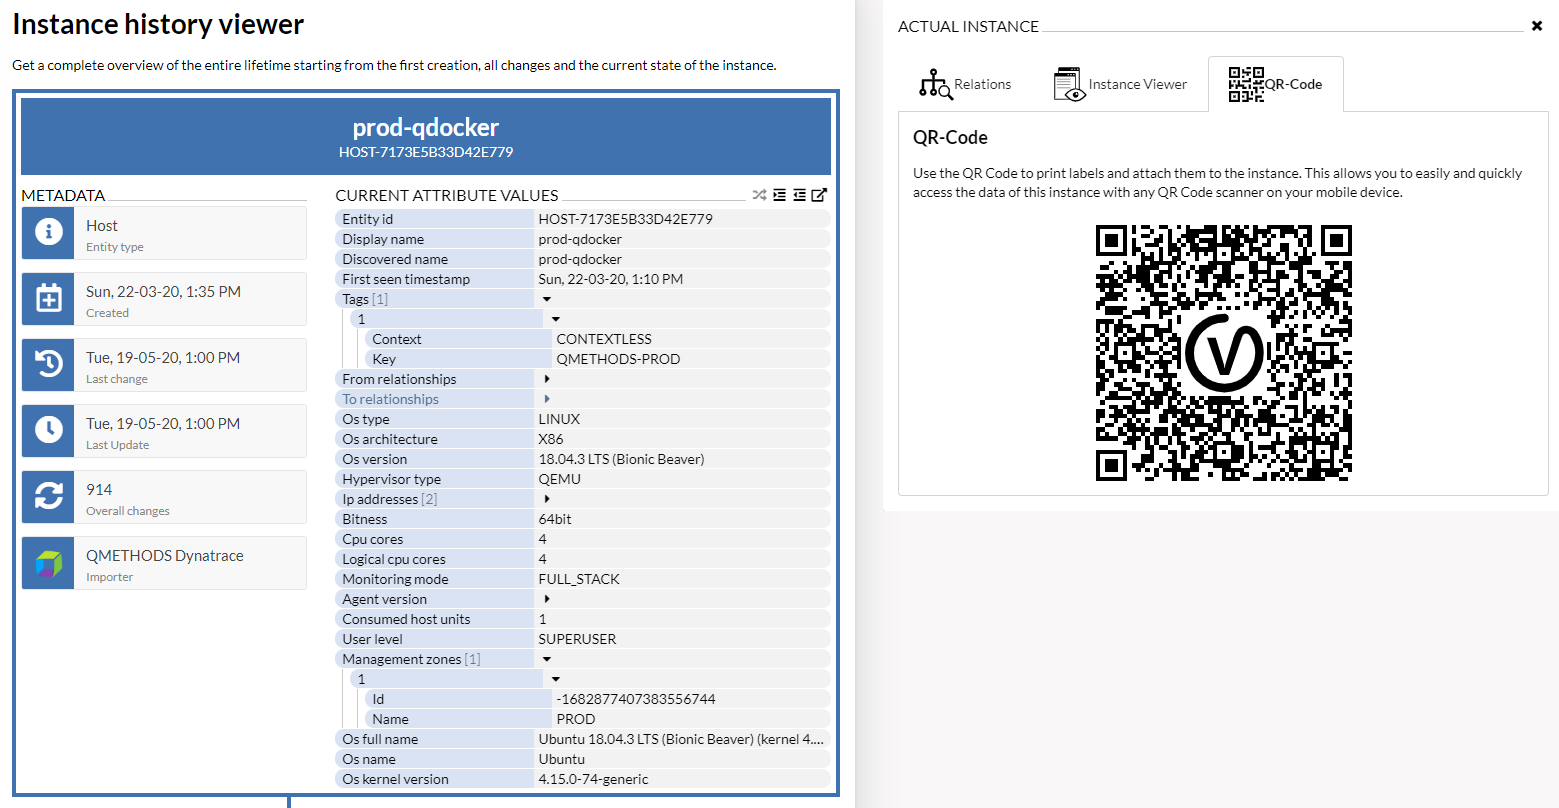 Automated provision of QR Codes for each individual data instance